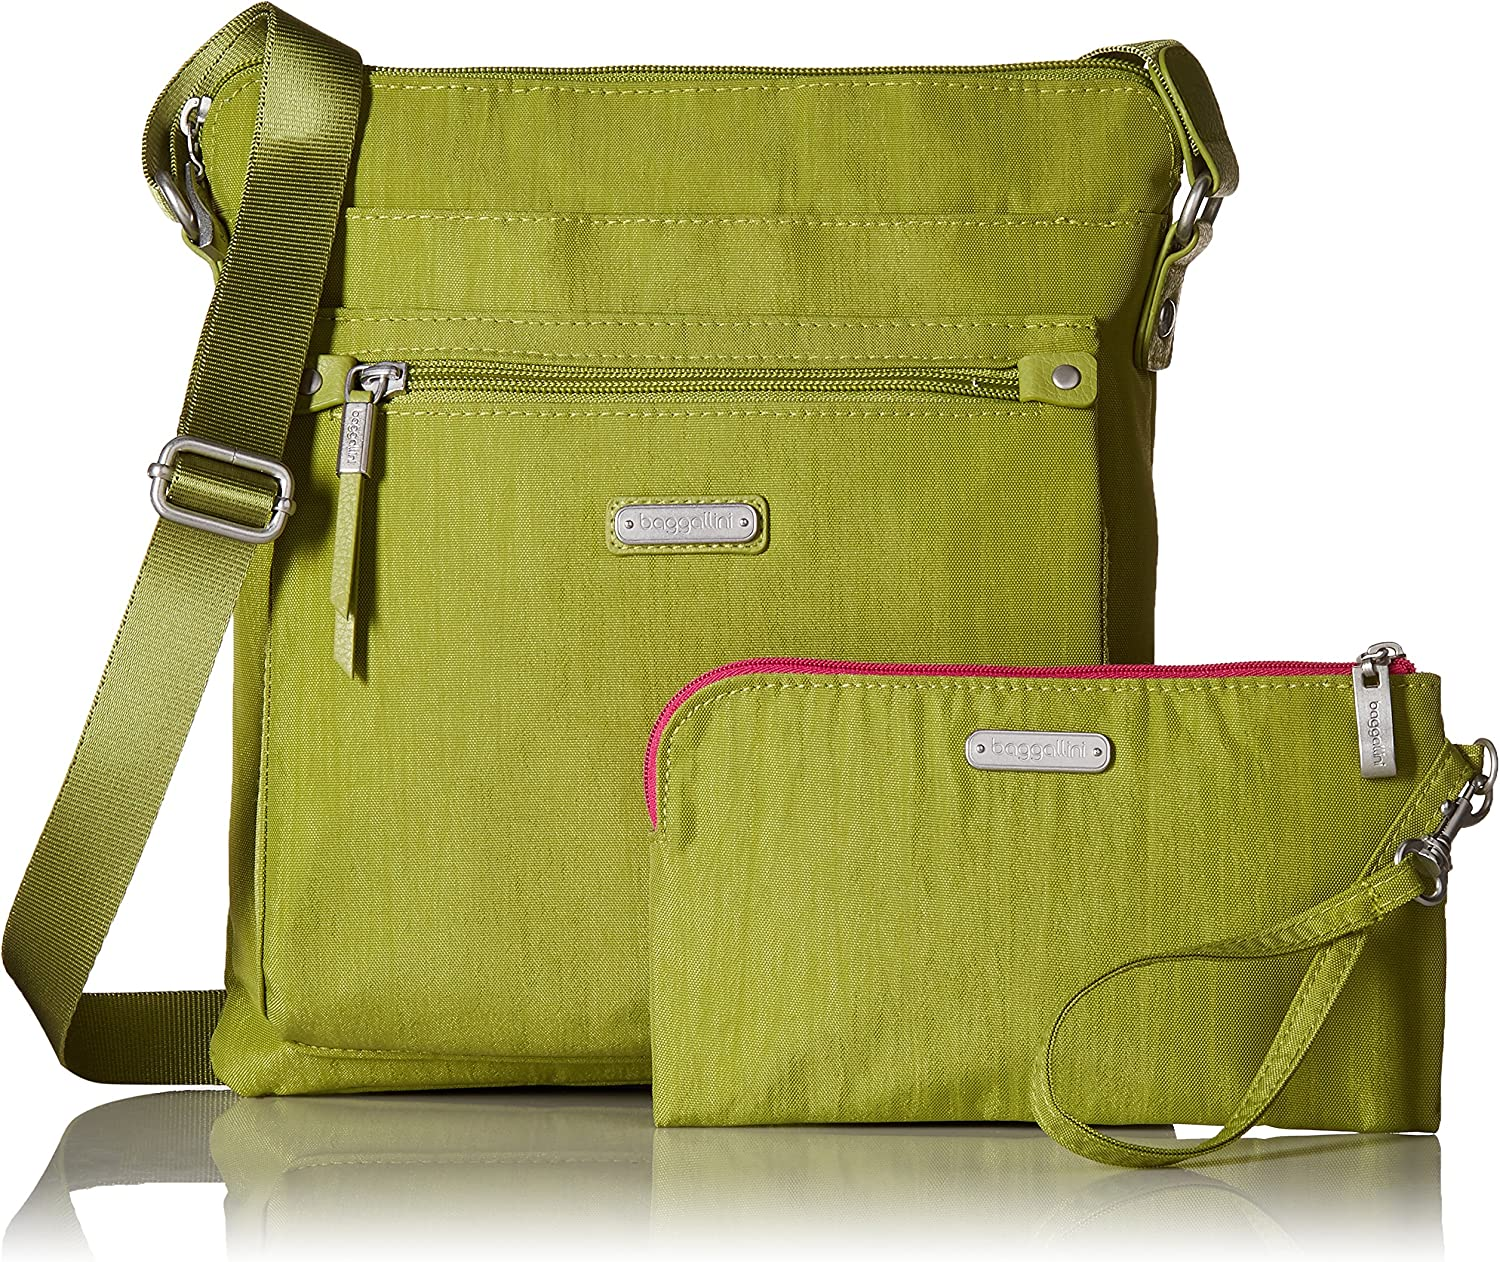 Baggallini Womens New Classic Go Bagg with RFID Phone Wristlet